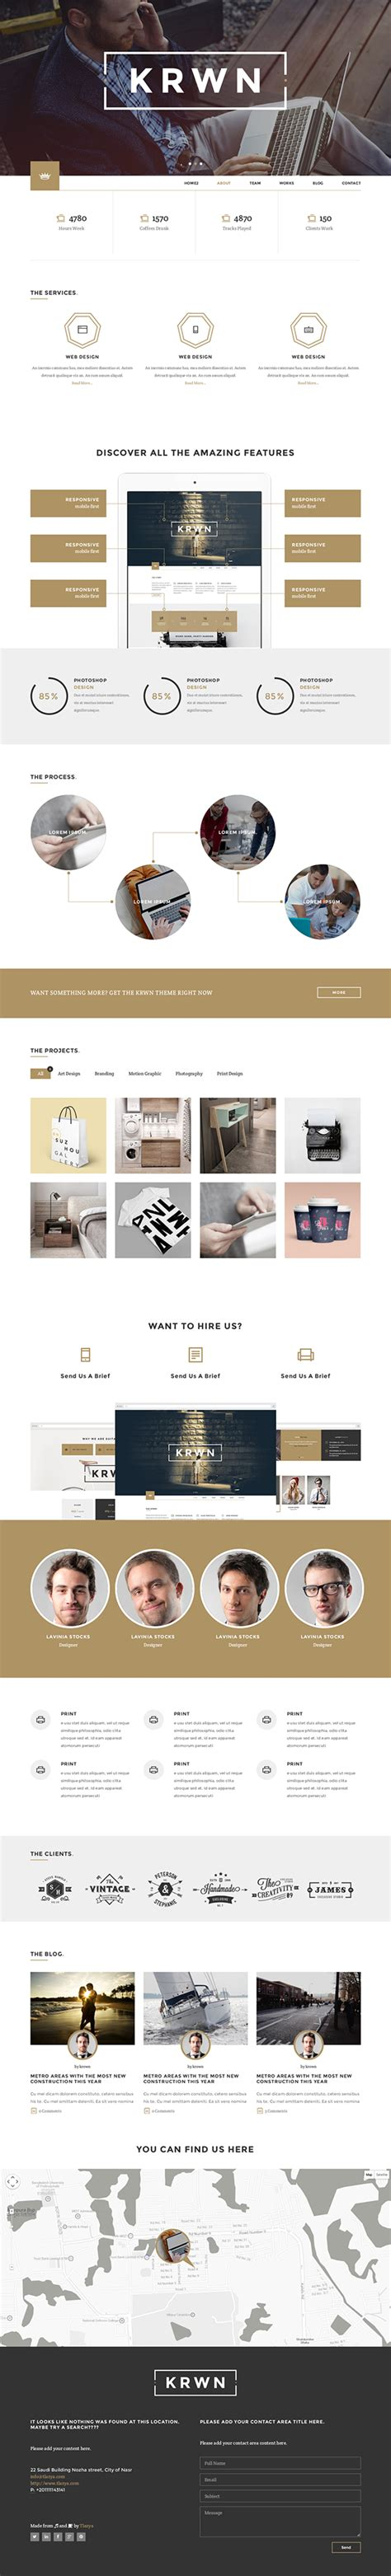 beowulf contains themes that are relevant to modern life krown responsive buniess wordpress theme on behance